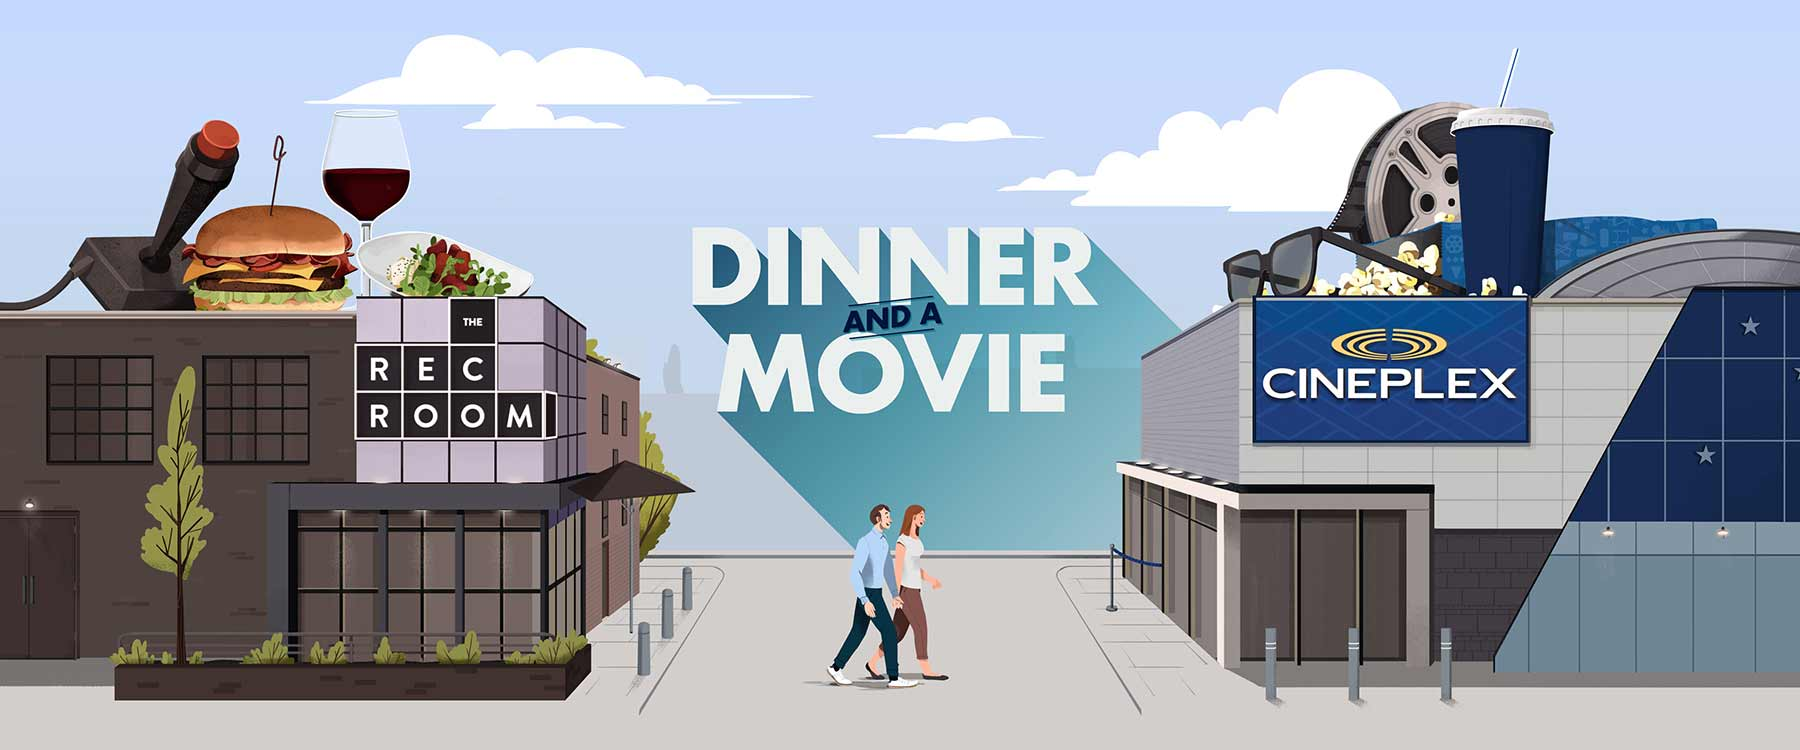 Dinnermovie-Banner